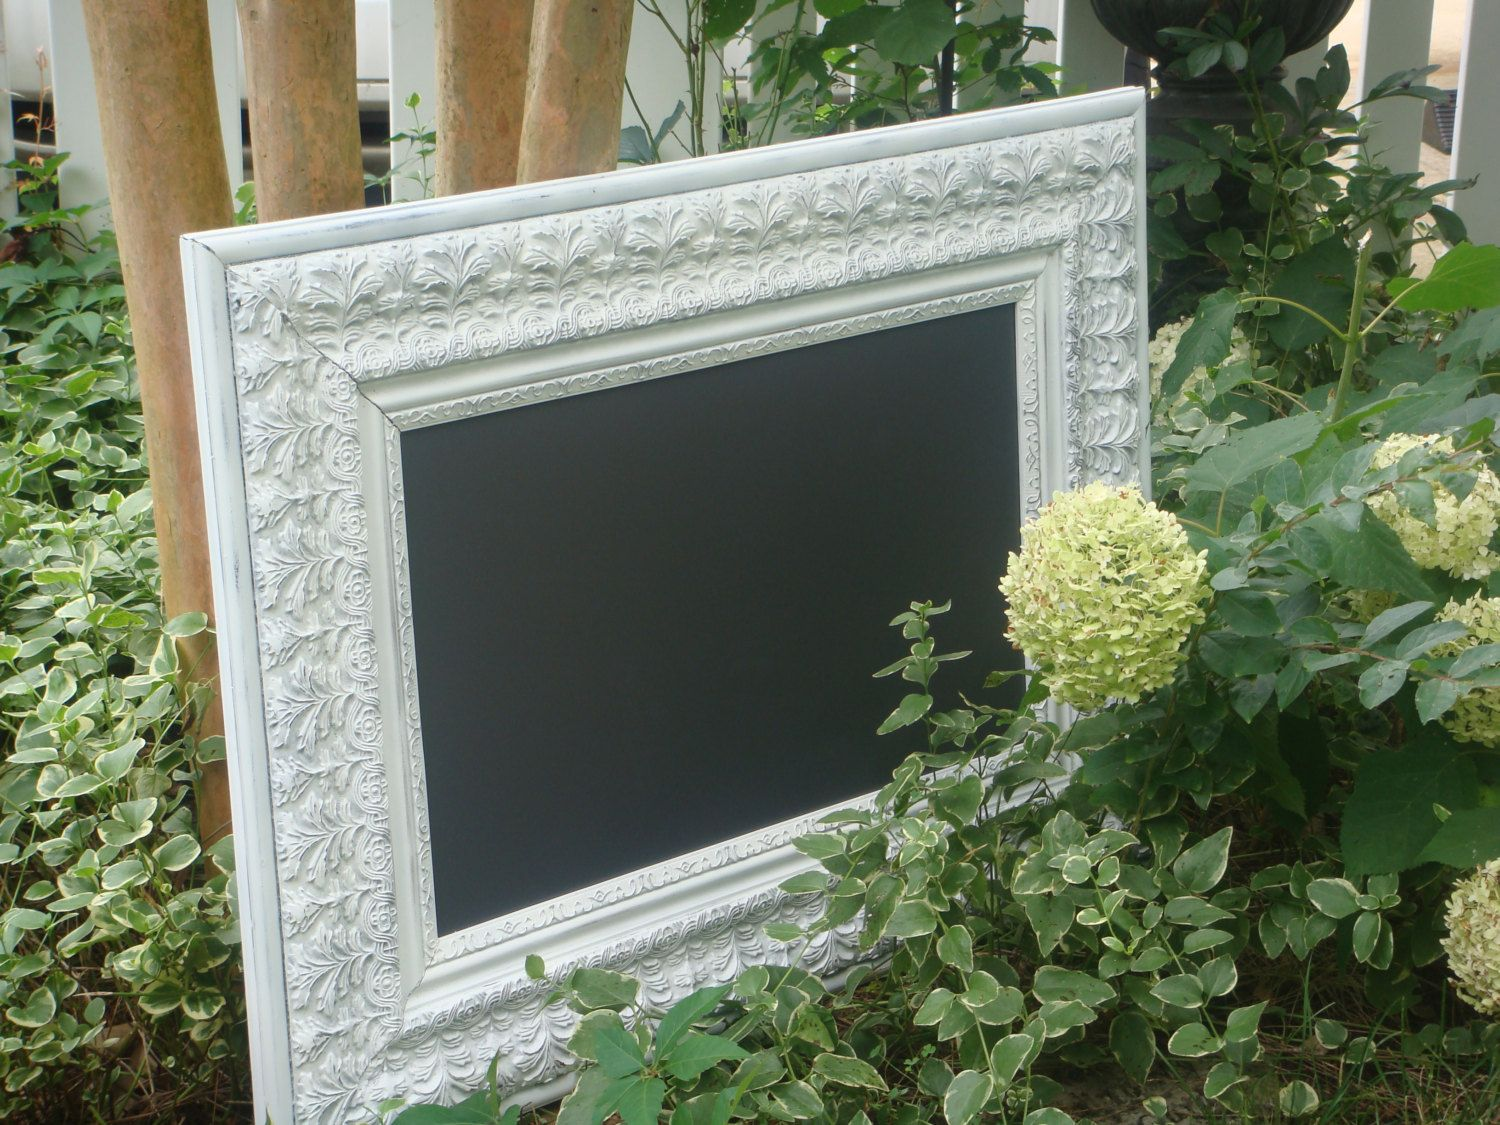 Chalkboard, LARGE, MAGNETIC and MAGNIFICENT, Vintage, Ornate, White-Distressed Frame Wedding/Restaurant (27 x 36 3/4 inches). $120.00 USD, via Etsy.